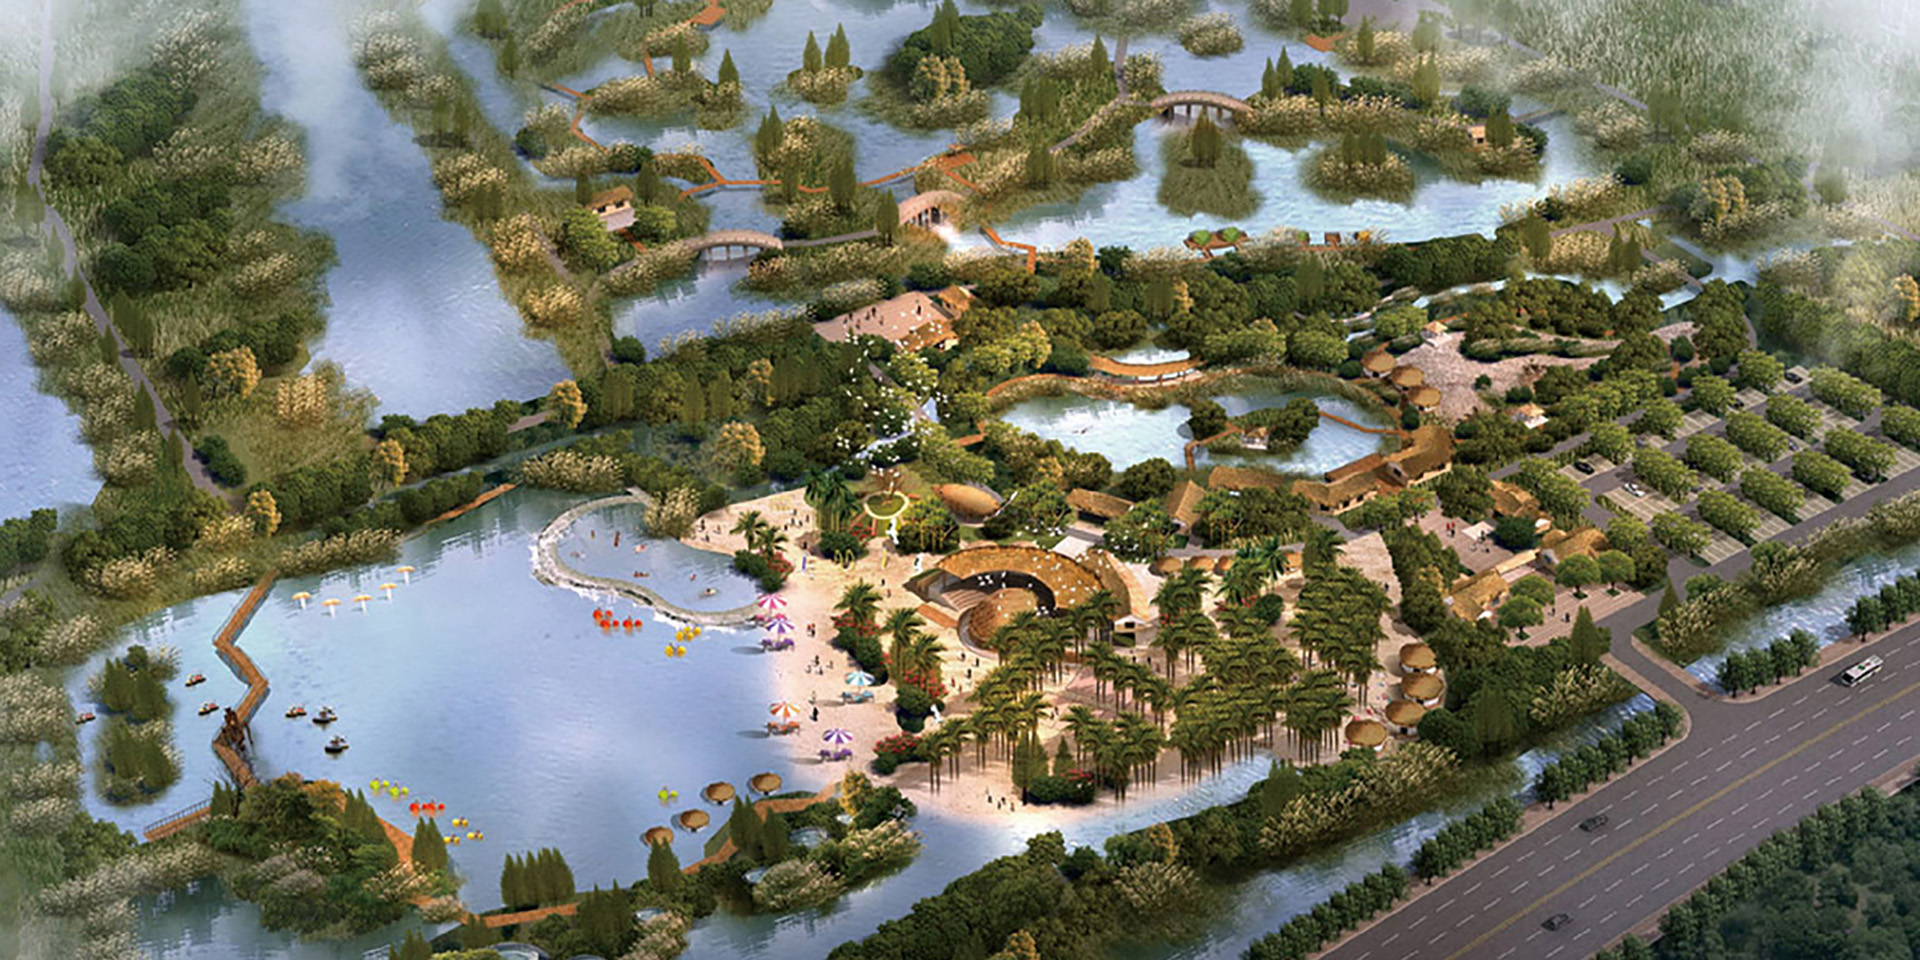 Planning Of The Wetland Wild Experience Project Of Hangzhou Bay National Wetland